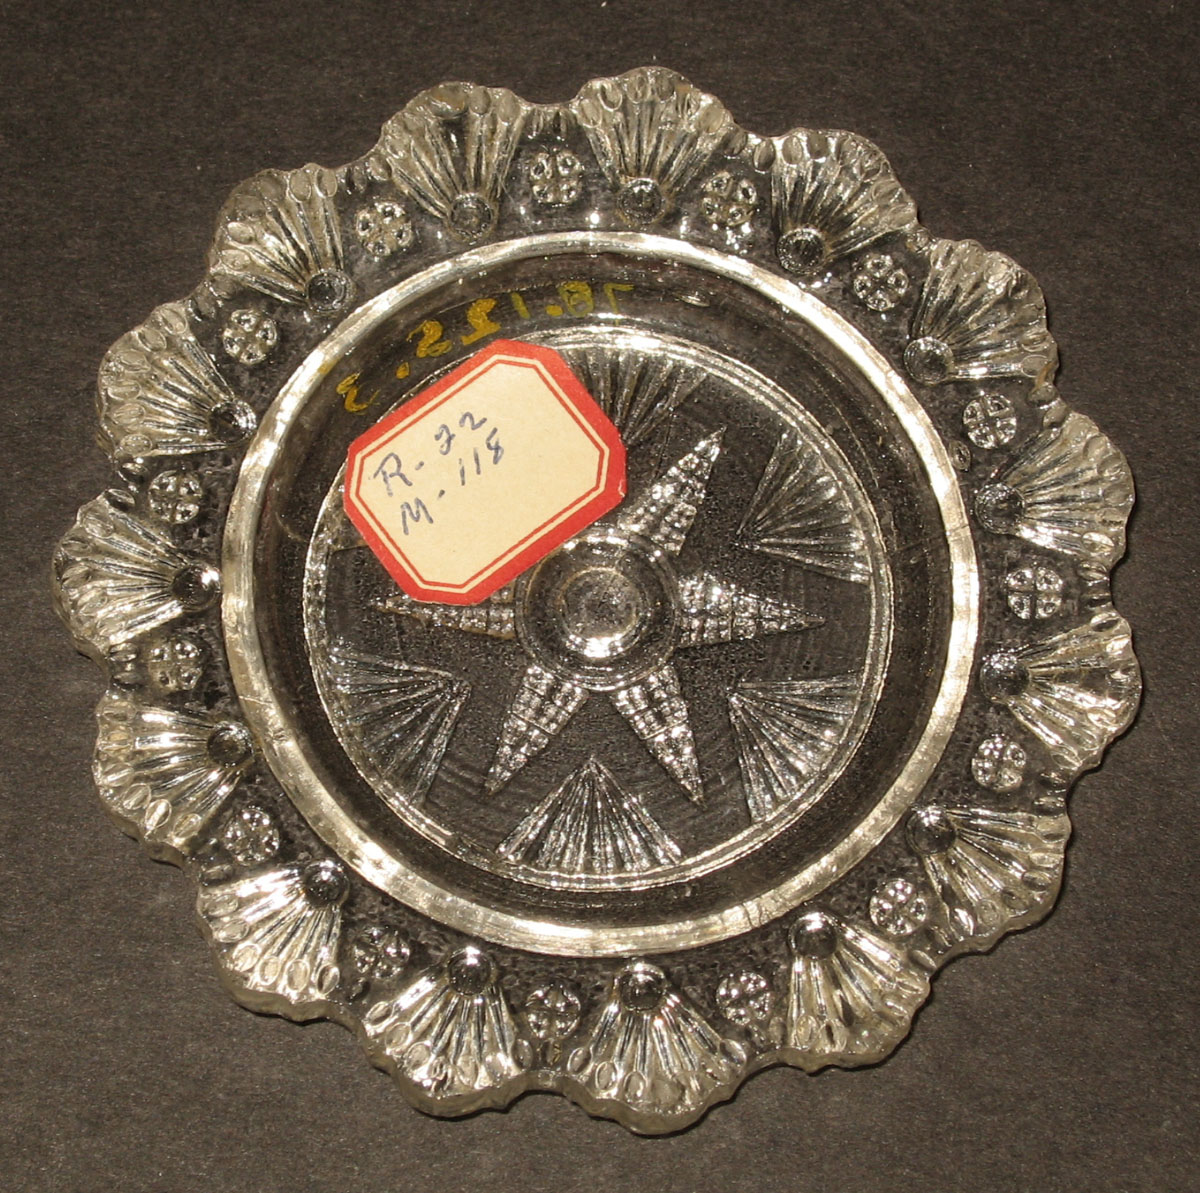 1978.0125.003 Glass cup plate